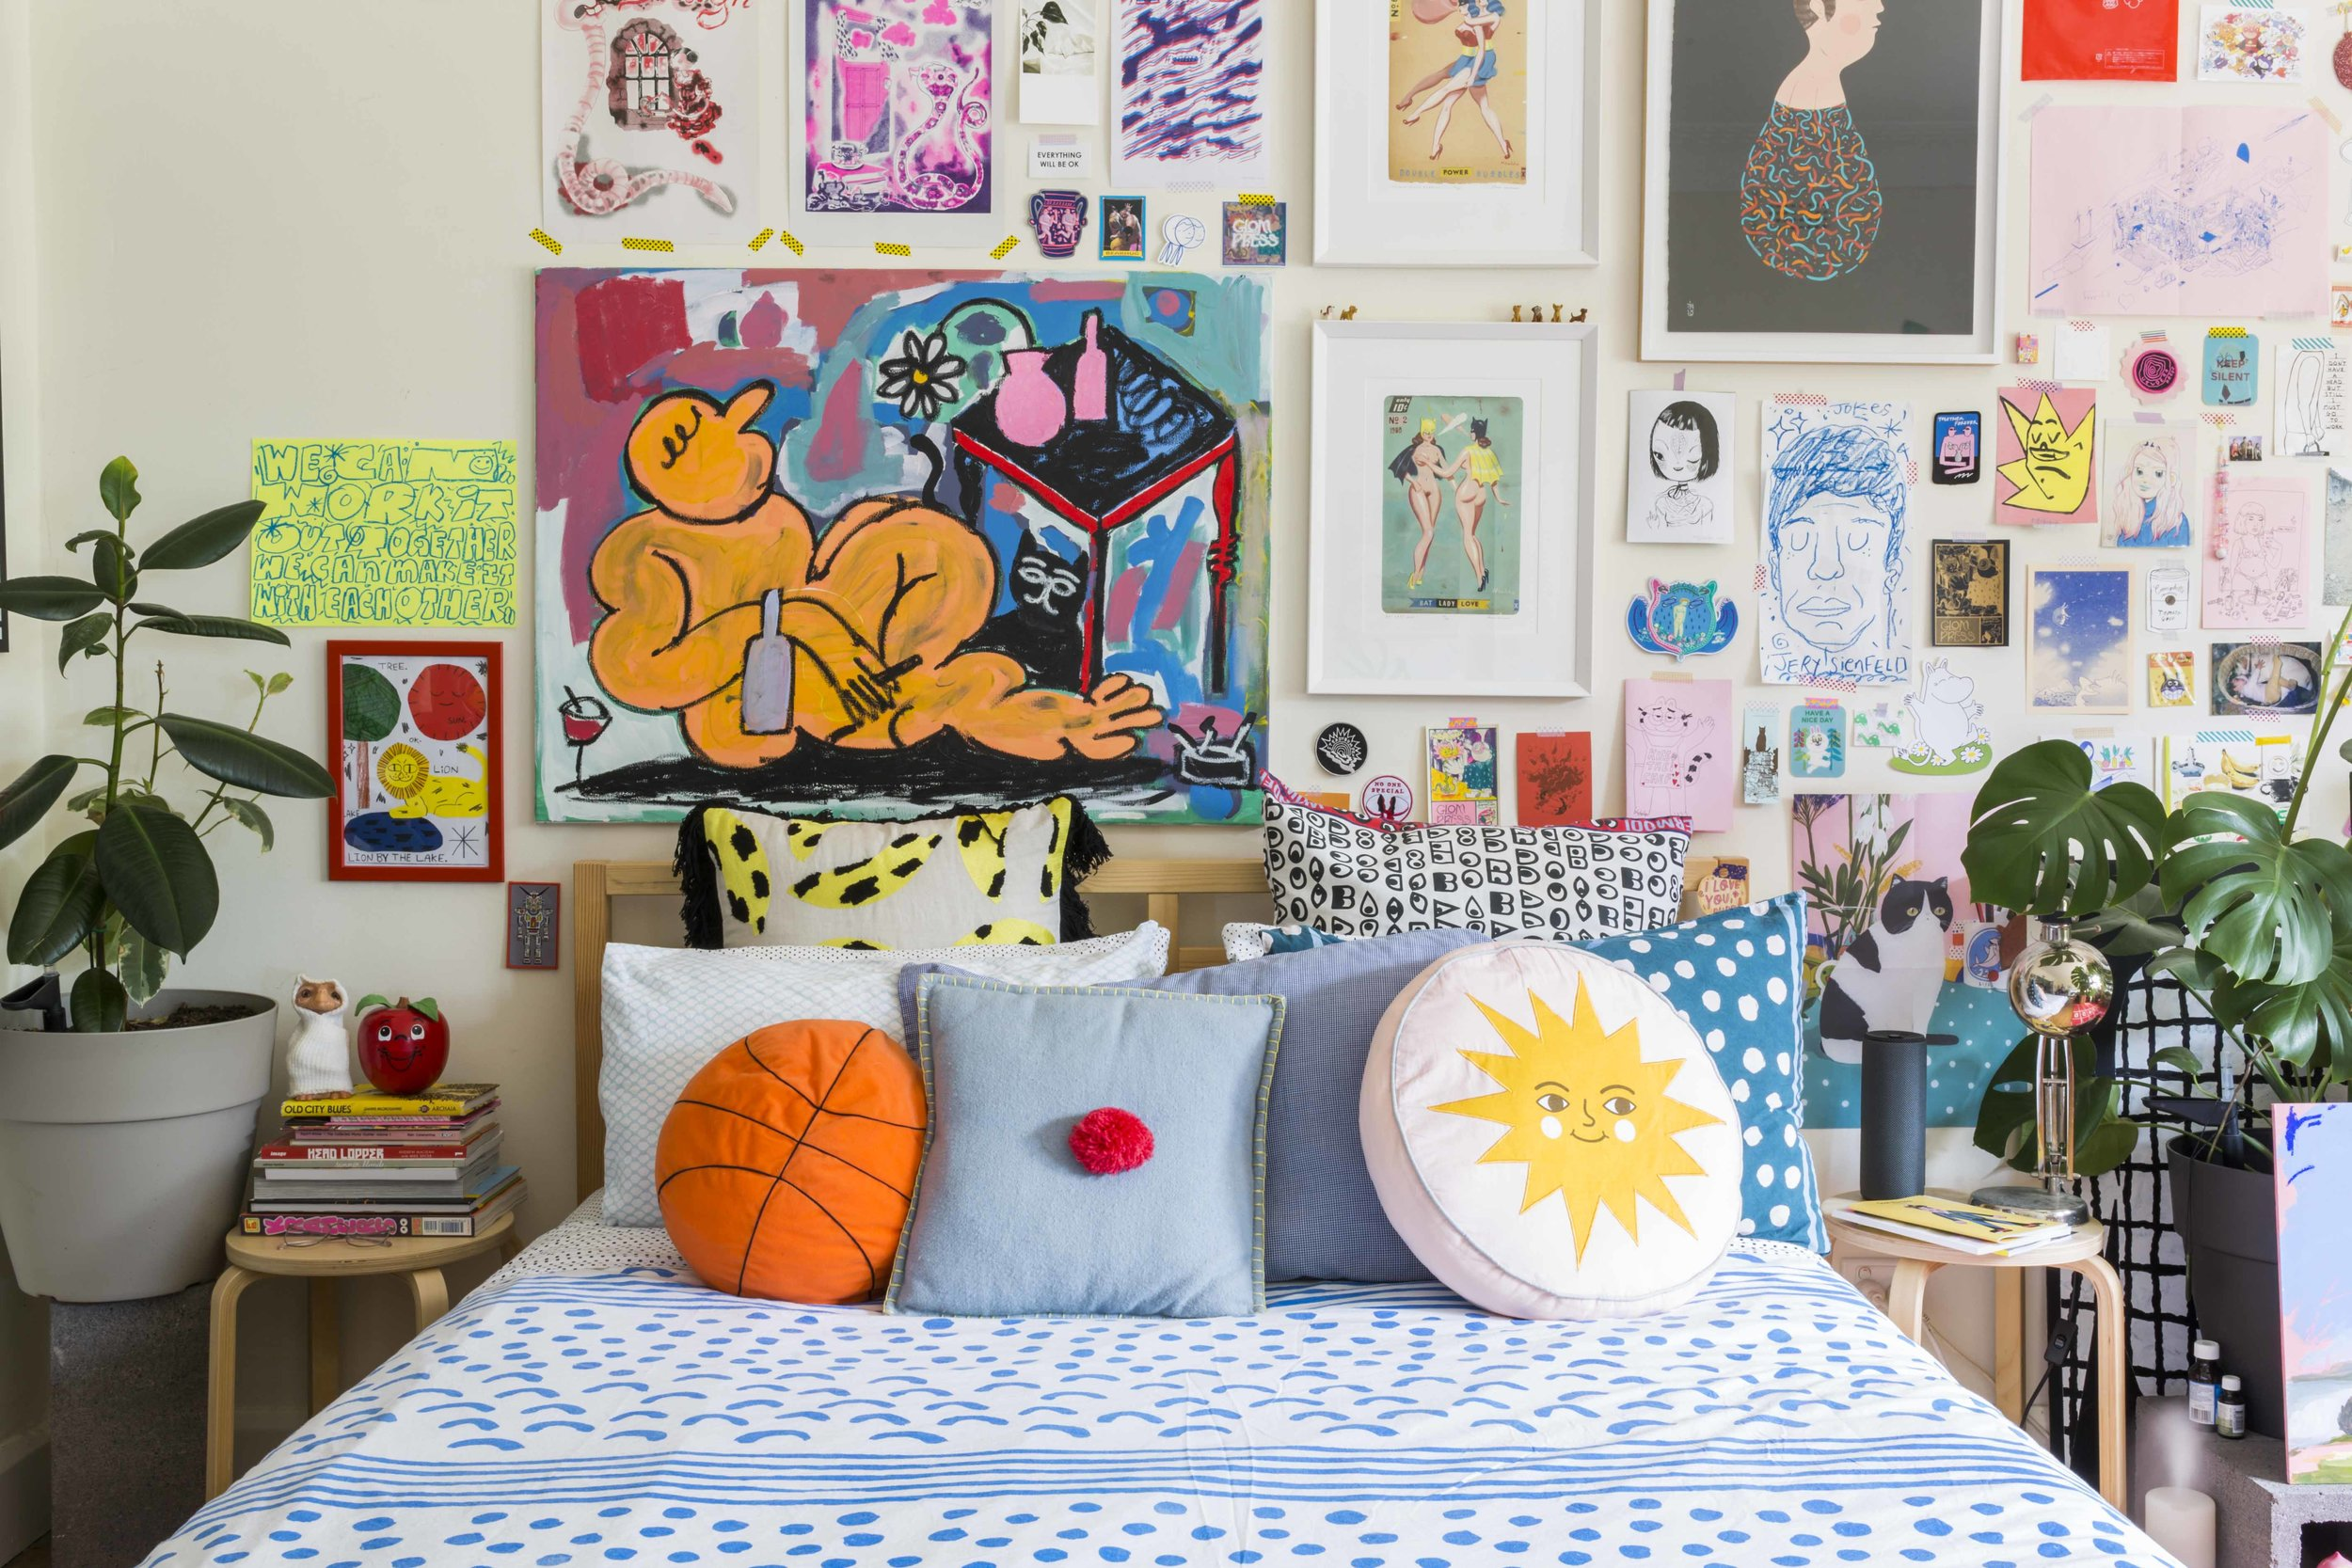 Above: Pillows and duvet cover from Arro Home, Ikea and Gorman. Big art pieces by Tae Parvit, The Seven Seas, Glom Press, Ryan Heshka and Robert Bowers. Below right:Painting by Dean Delandre, sword by Ghostpatrol,mid-century drawers from Inner West Buy Swap Sell Facebook Group